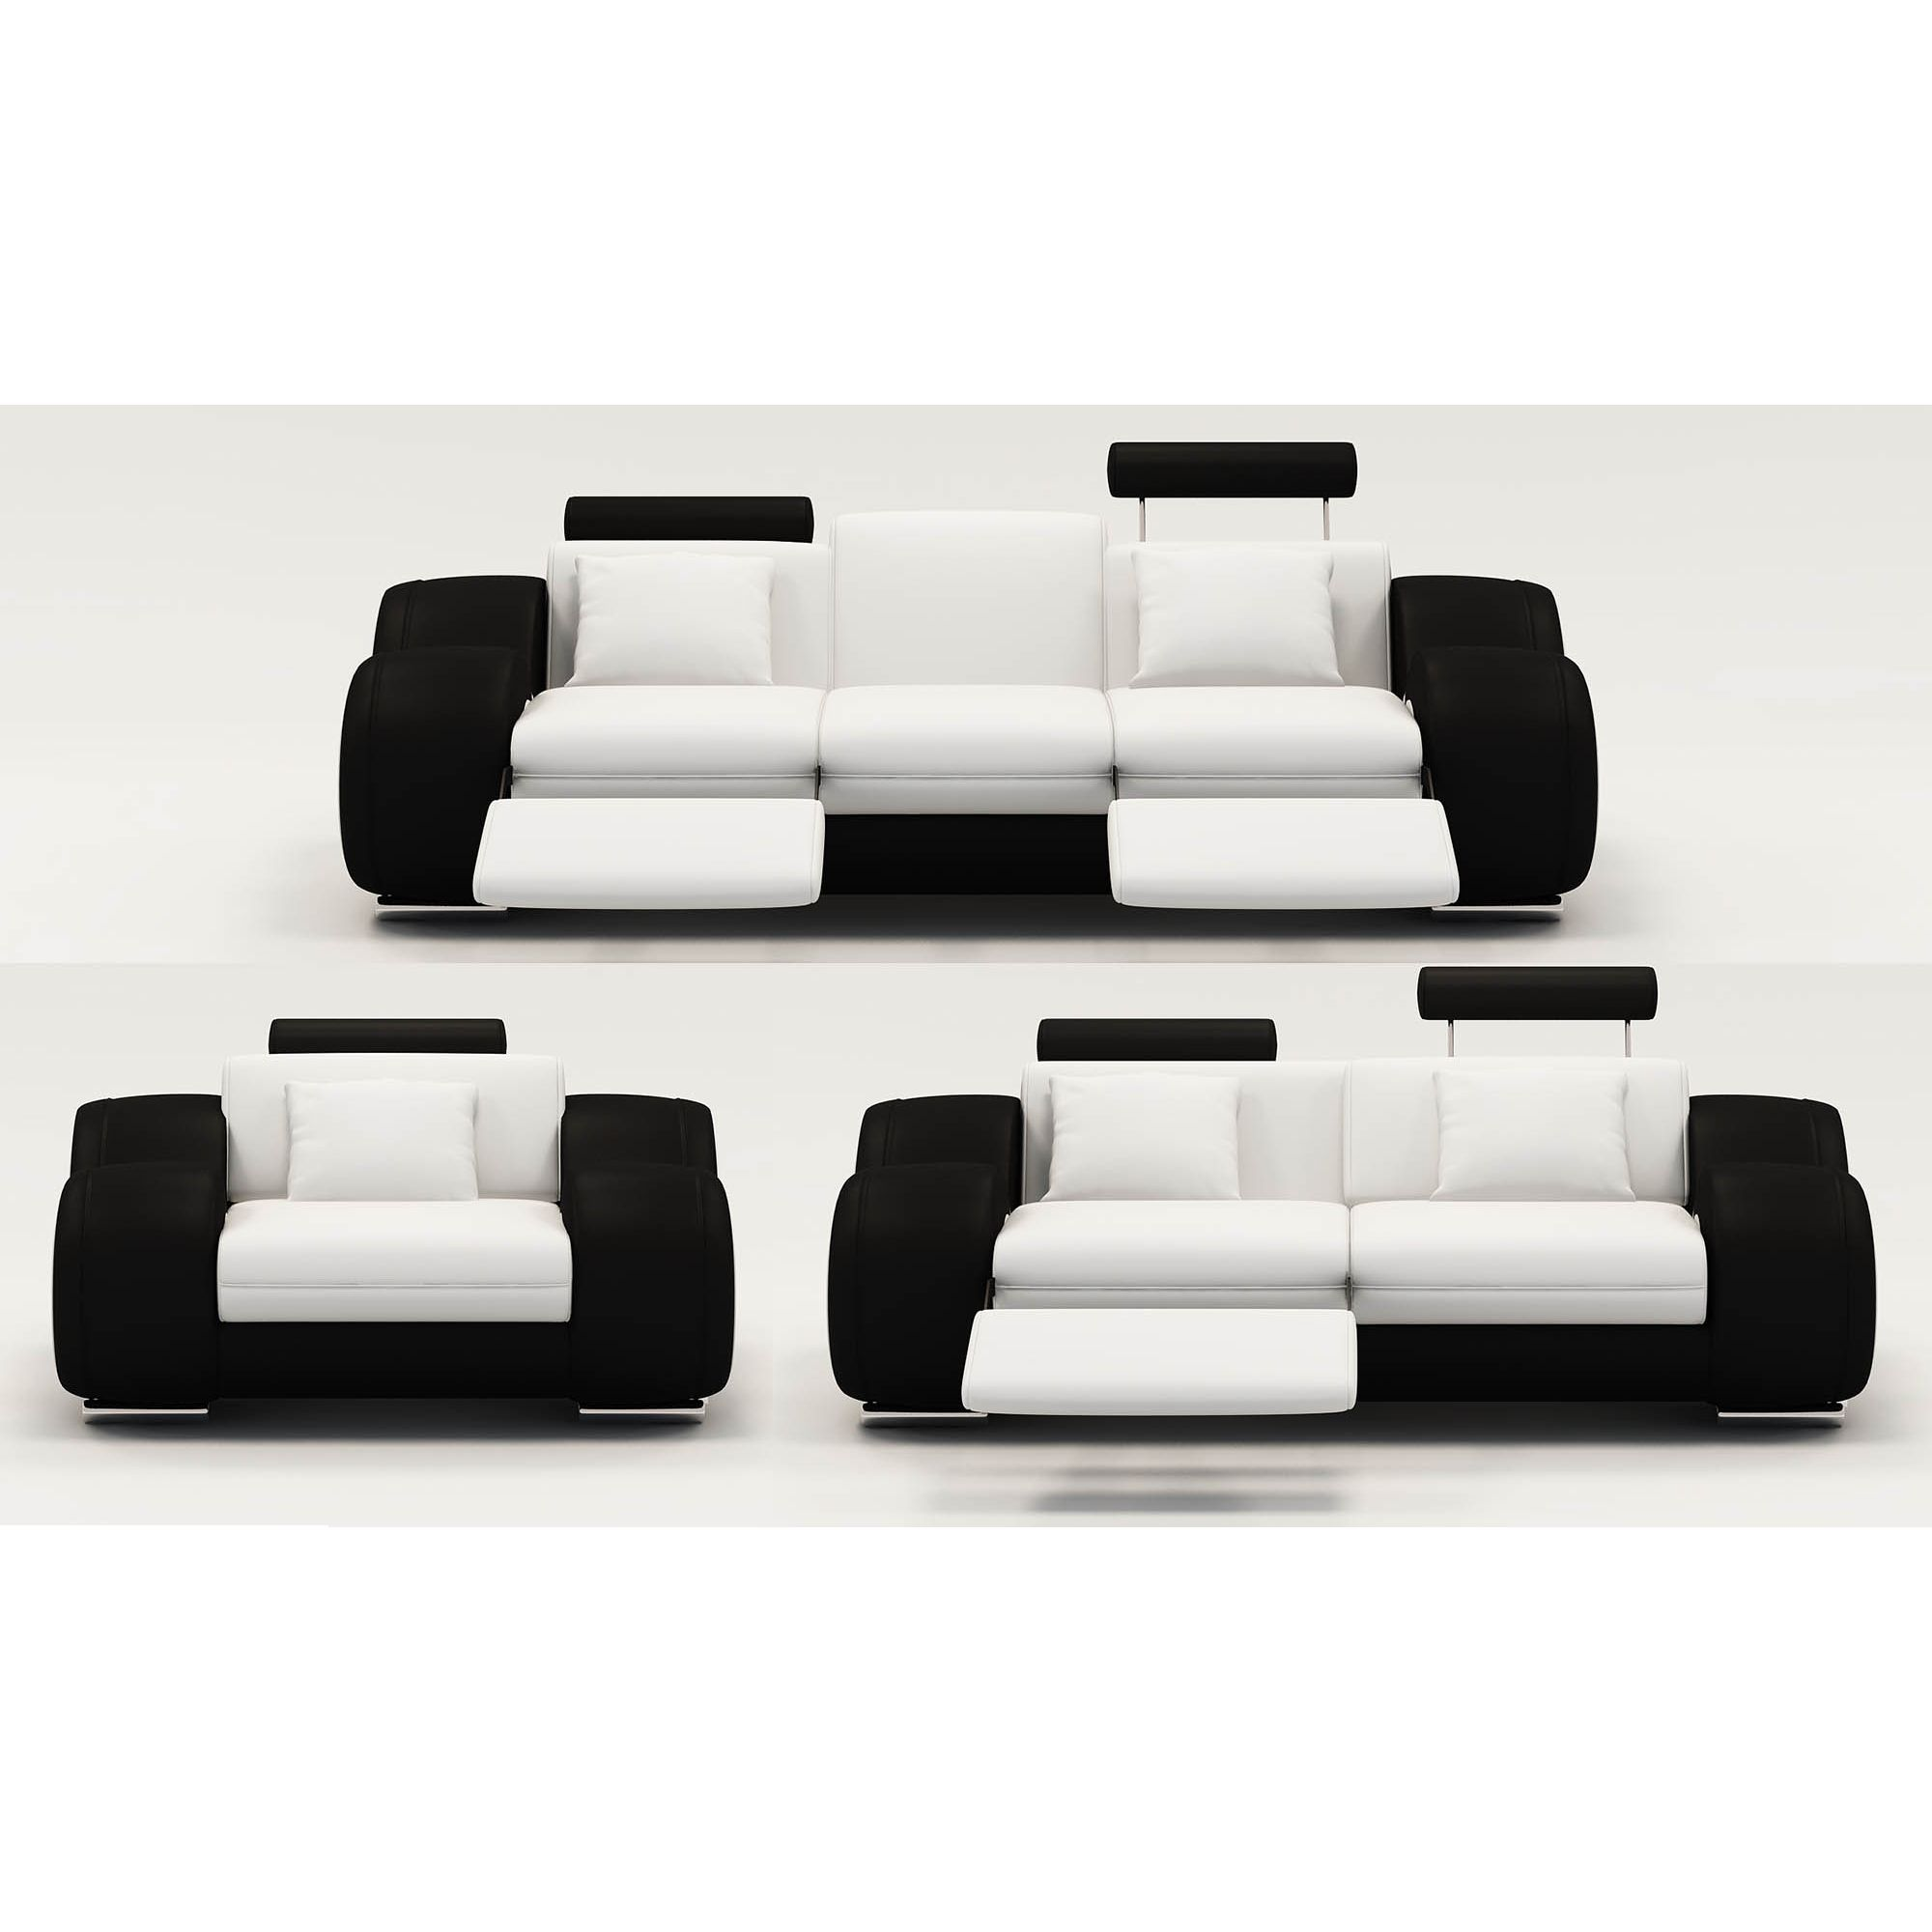 deco in paris ensemble canape relax design 3 2 1 places blanc et noir oslo oslo 3 2 1 blanc noir. Black Bedroom Furniture Sets. Home Design Ideas